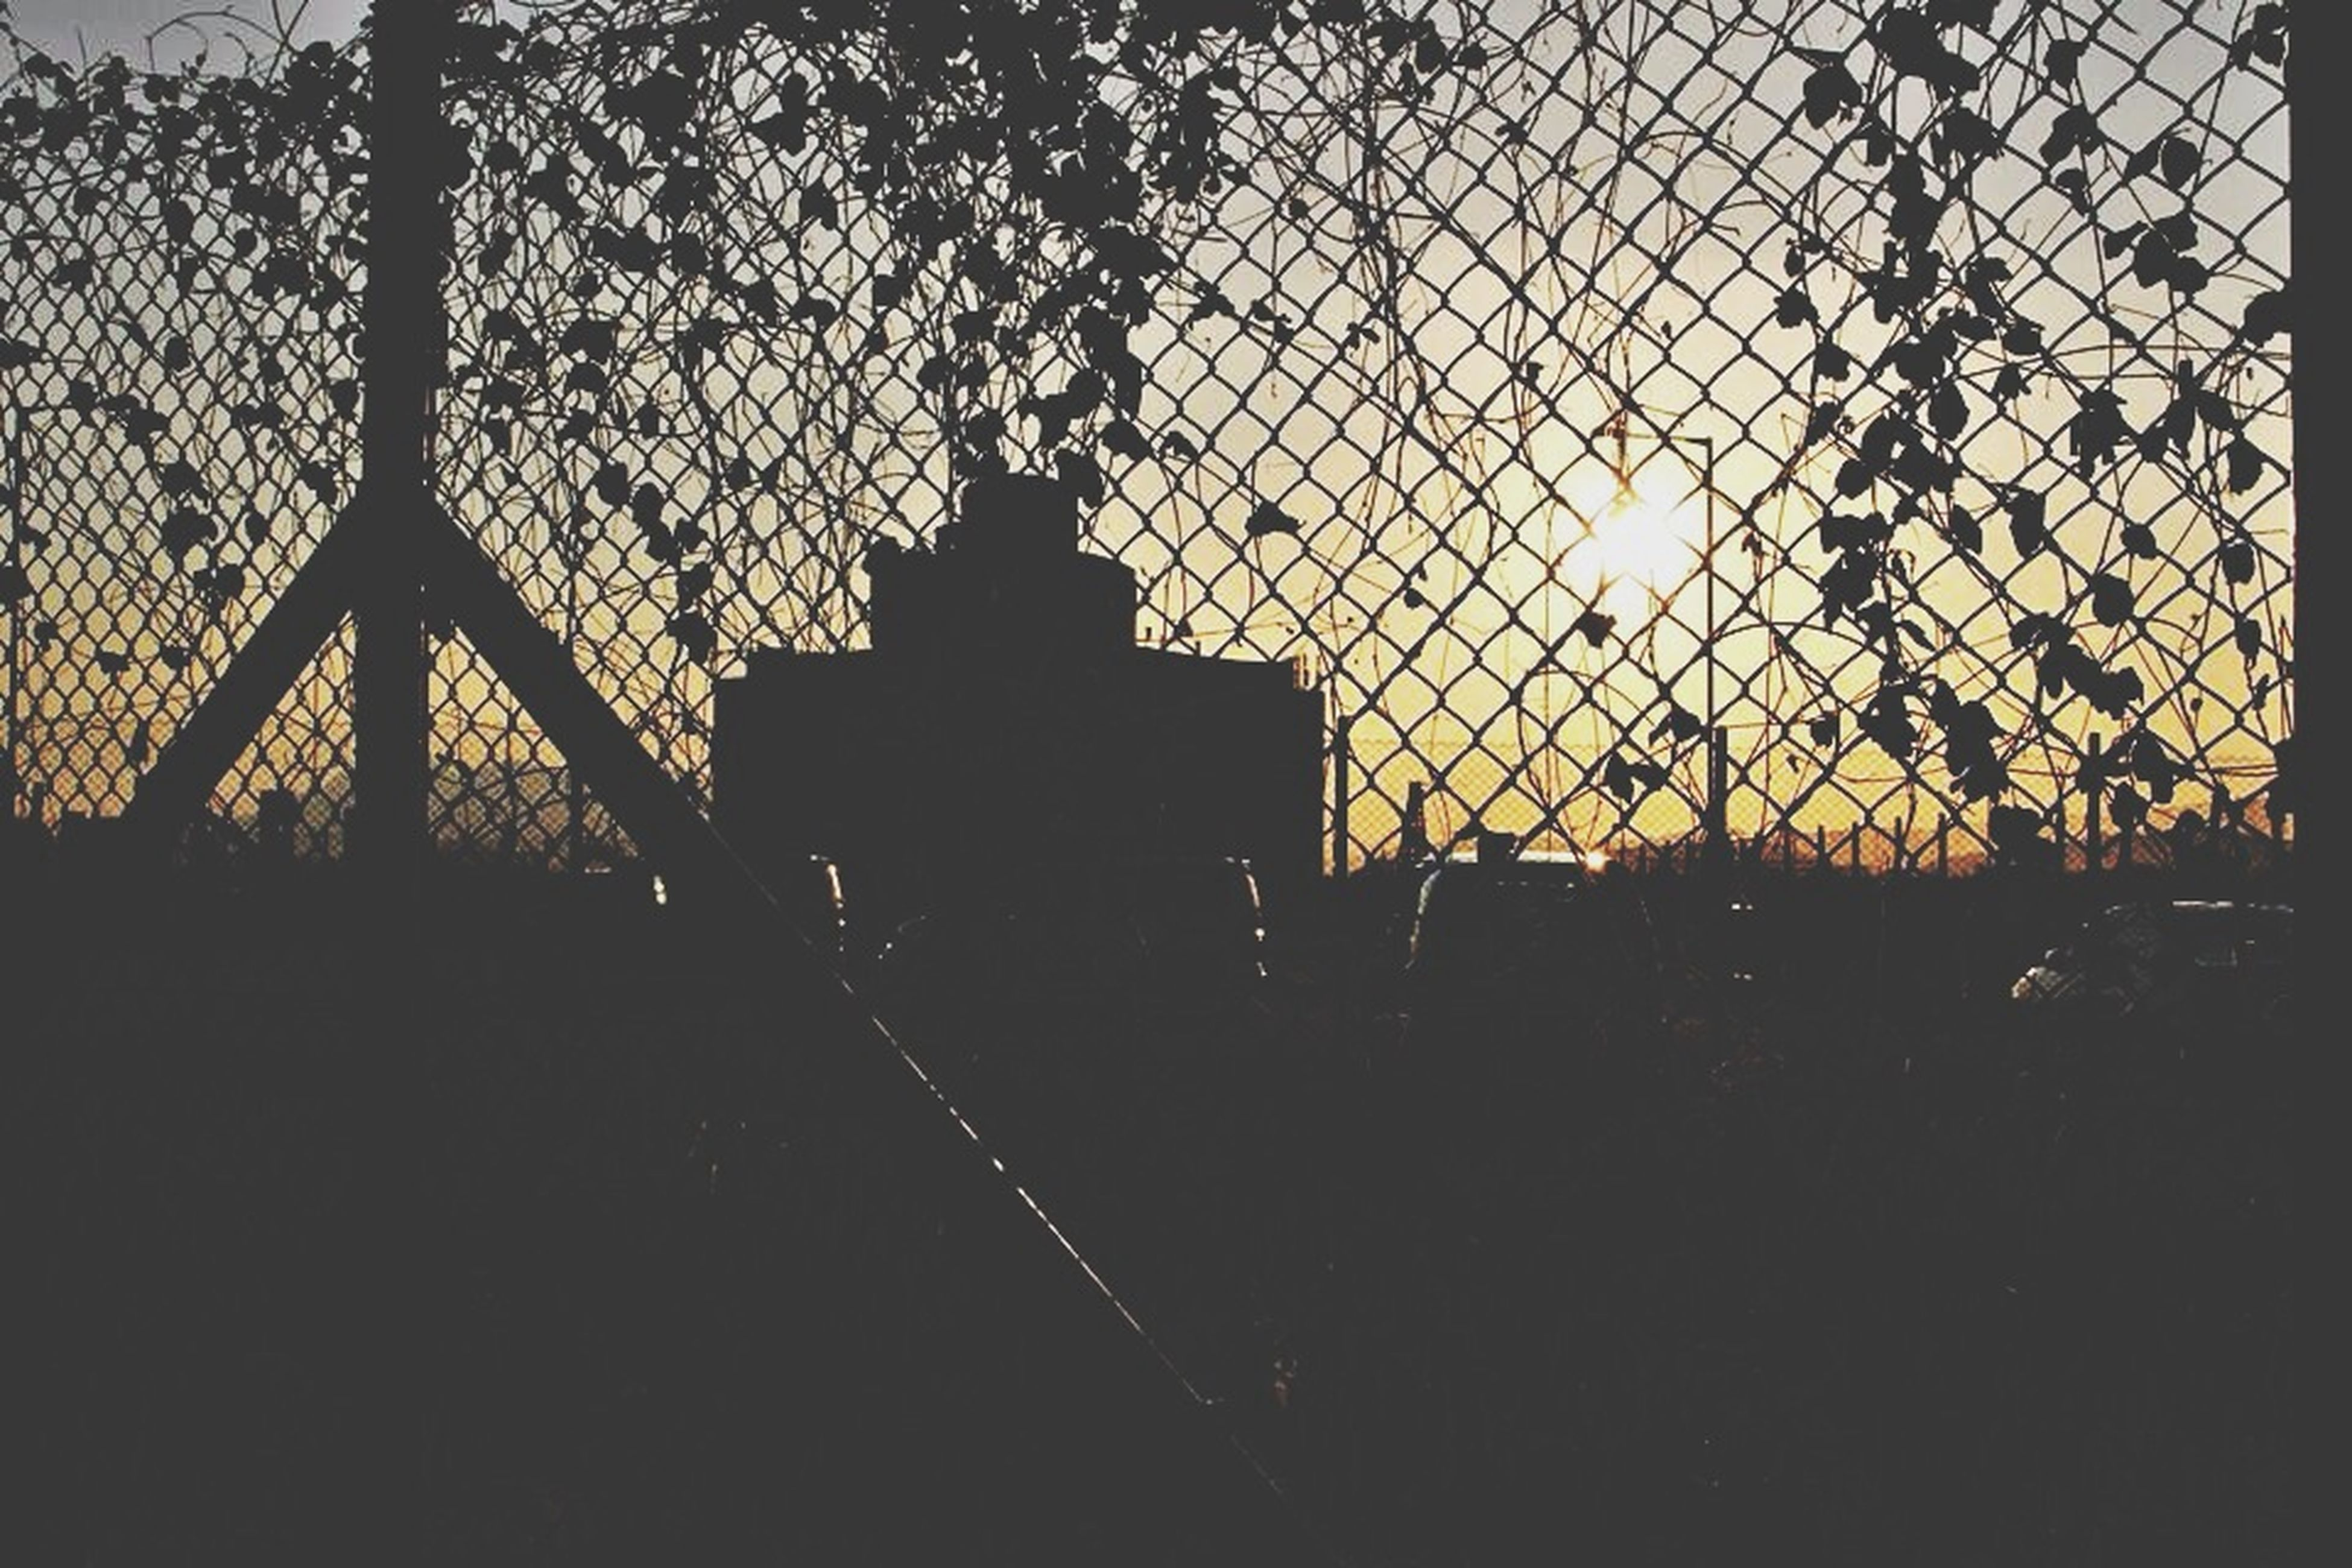 sunset, silhouette, fence, sky, protection, safety, built structure, metal, security, chainlink fence, architecture, orange color, tree, tranquility, no people, outdoors, nature, bare tree, dusk, railing